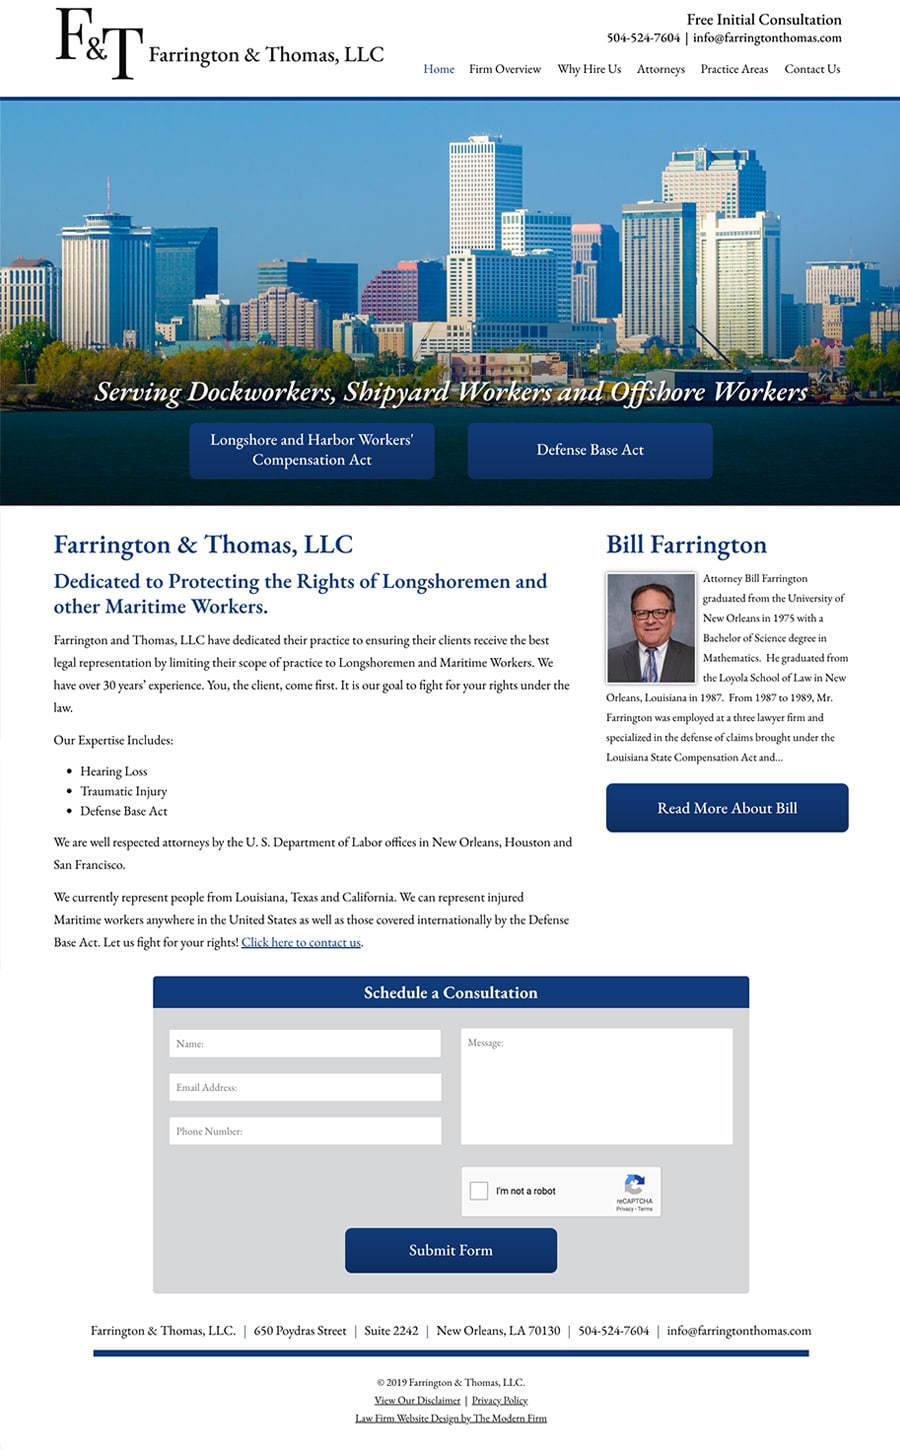 Law Firm Website Design for Farrington & Thomas, LLC.